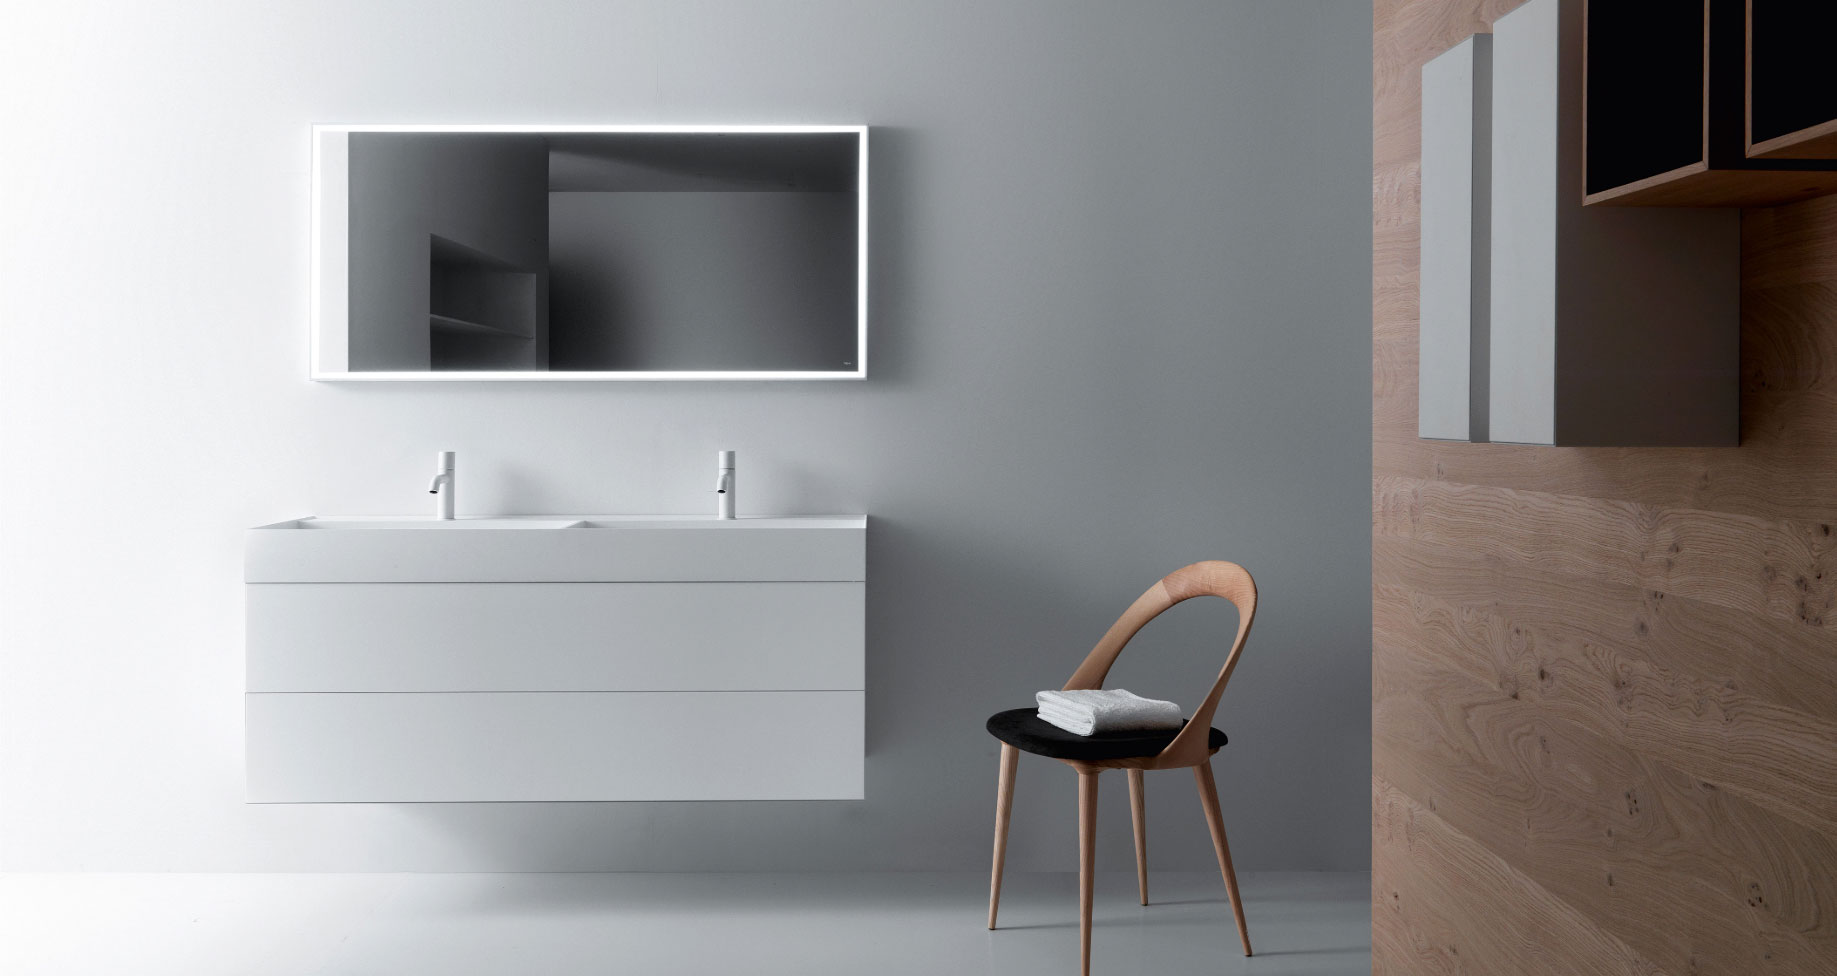 Minimalist modern bathroom vanity with wooden wall and chair